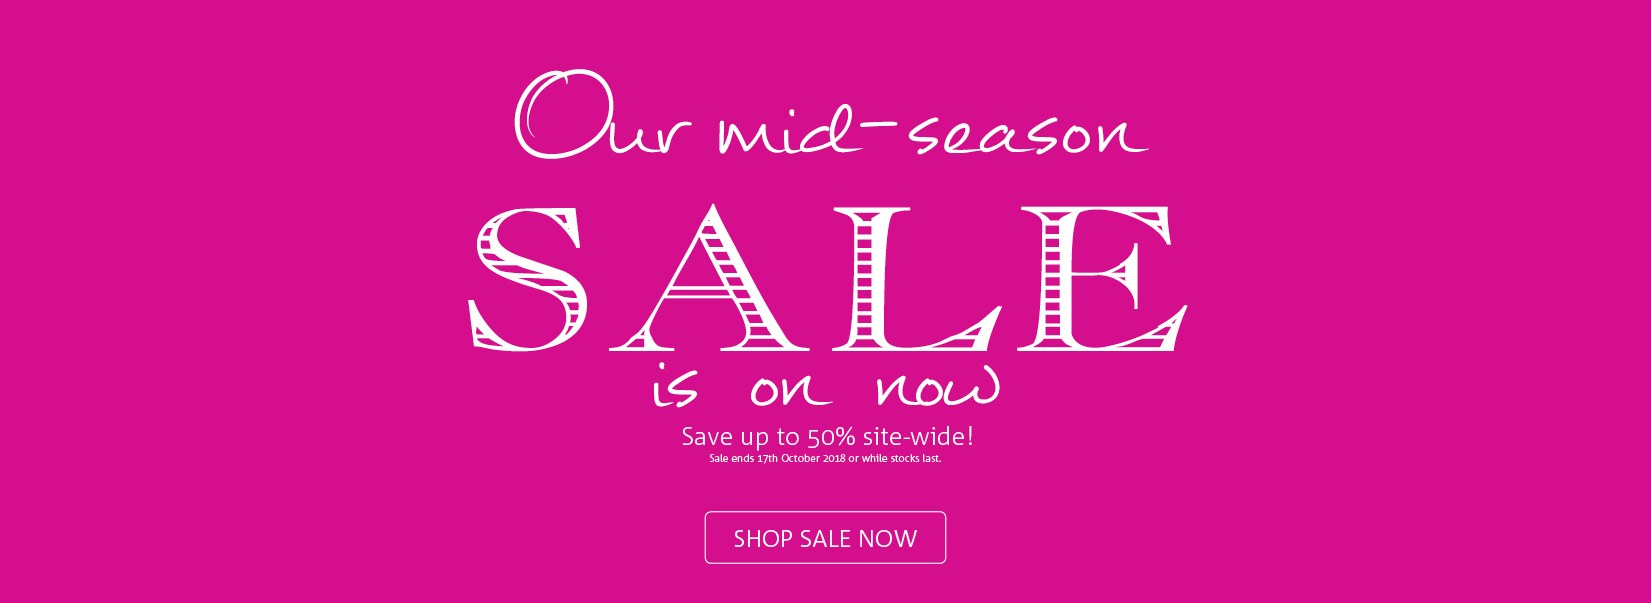 mid-season up to 50 off sitewide - sept18